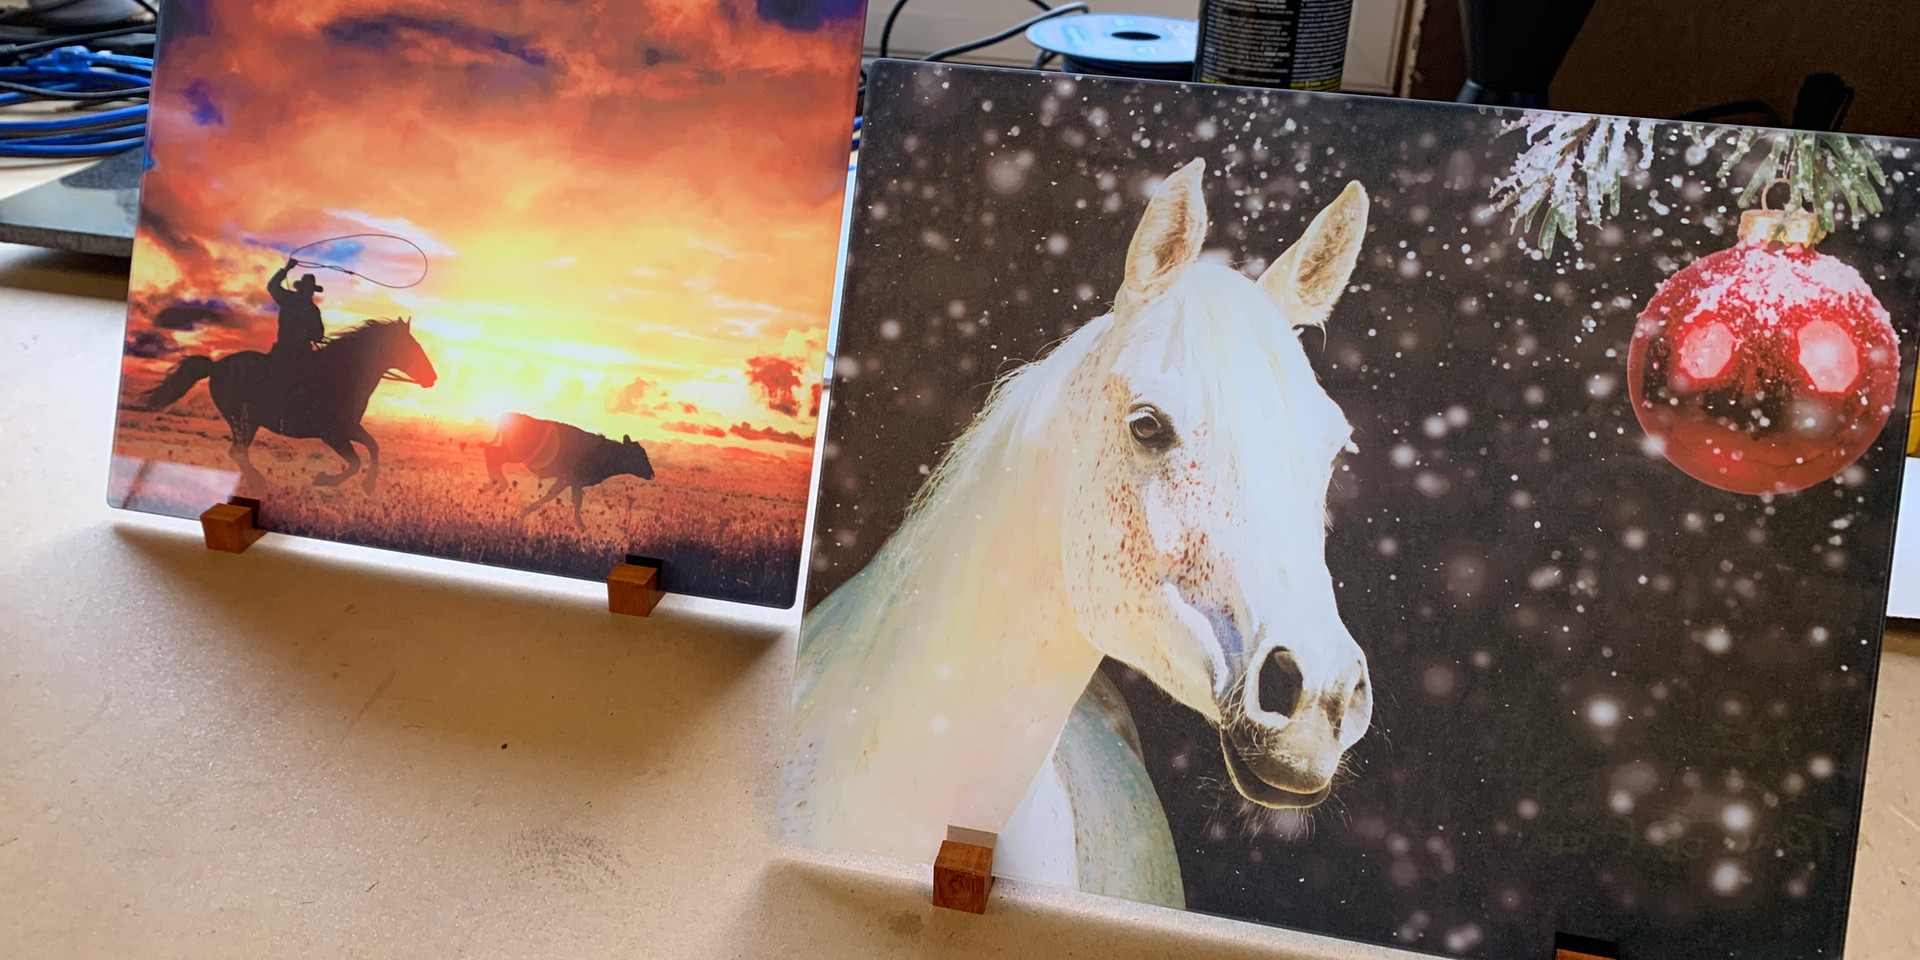 Items for charity auction to benefit Enumclaw Pro Rodeo. Prints on glass.